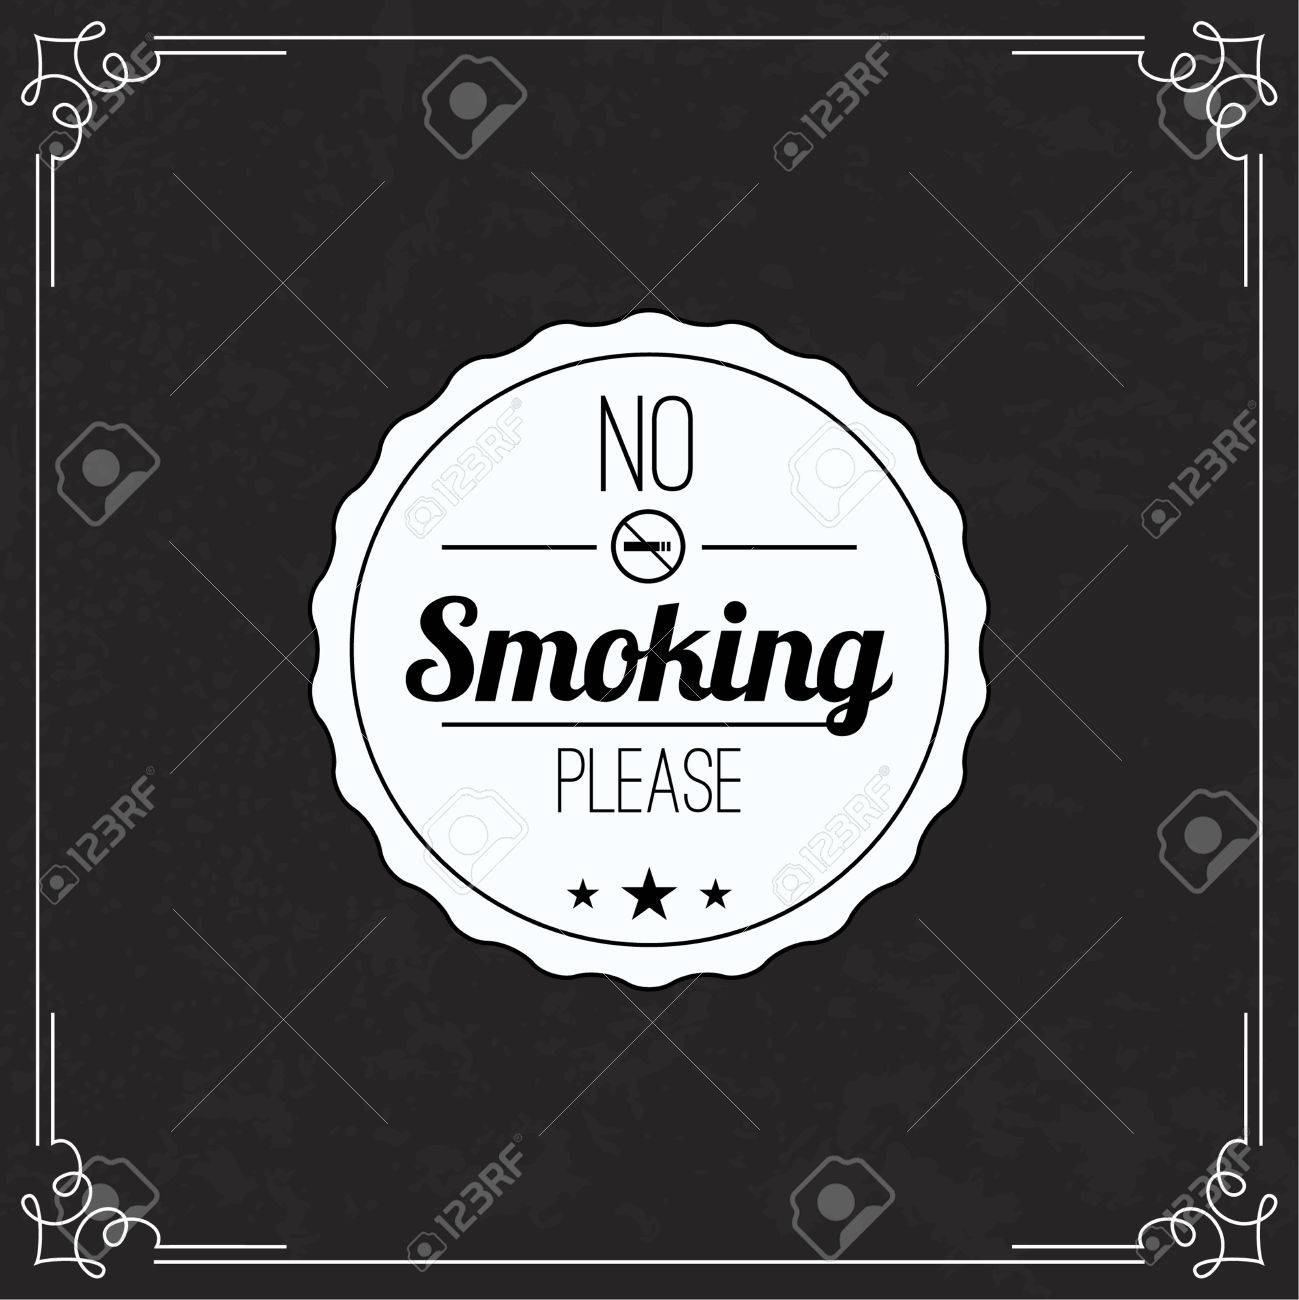 Please no smoking label no smoke tag stop smoking symbol old please no smoking label no smoke tag stop smoking symbol old vintage frame buycottarizona Images